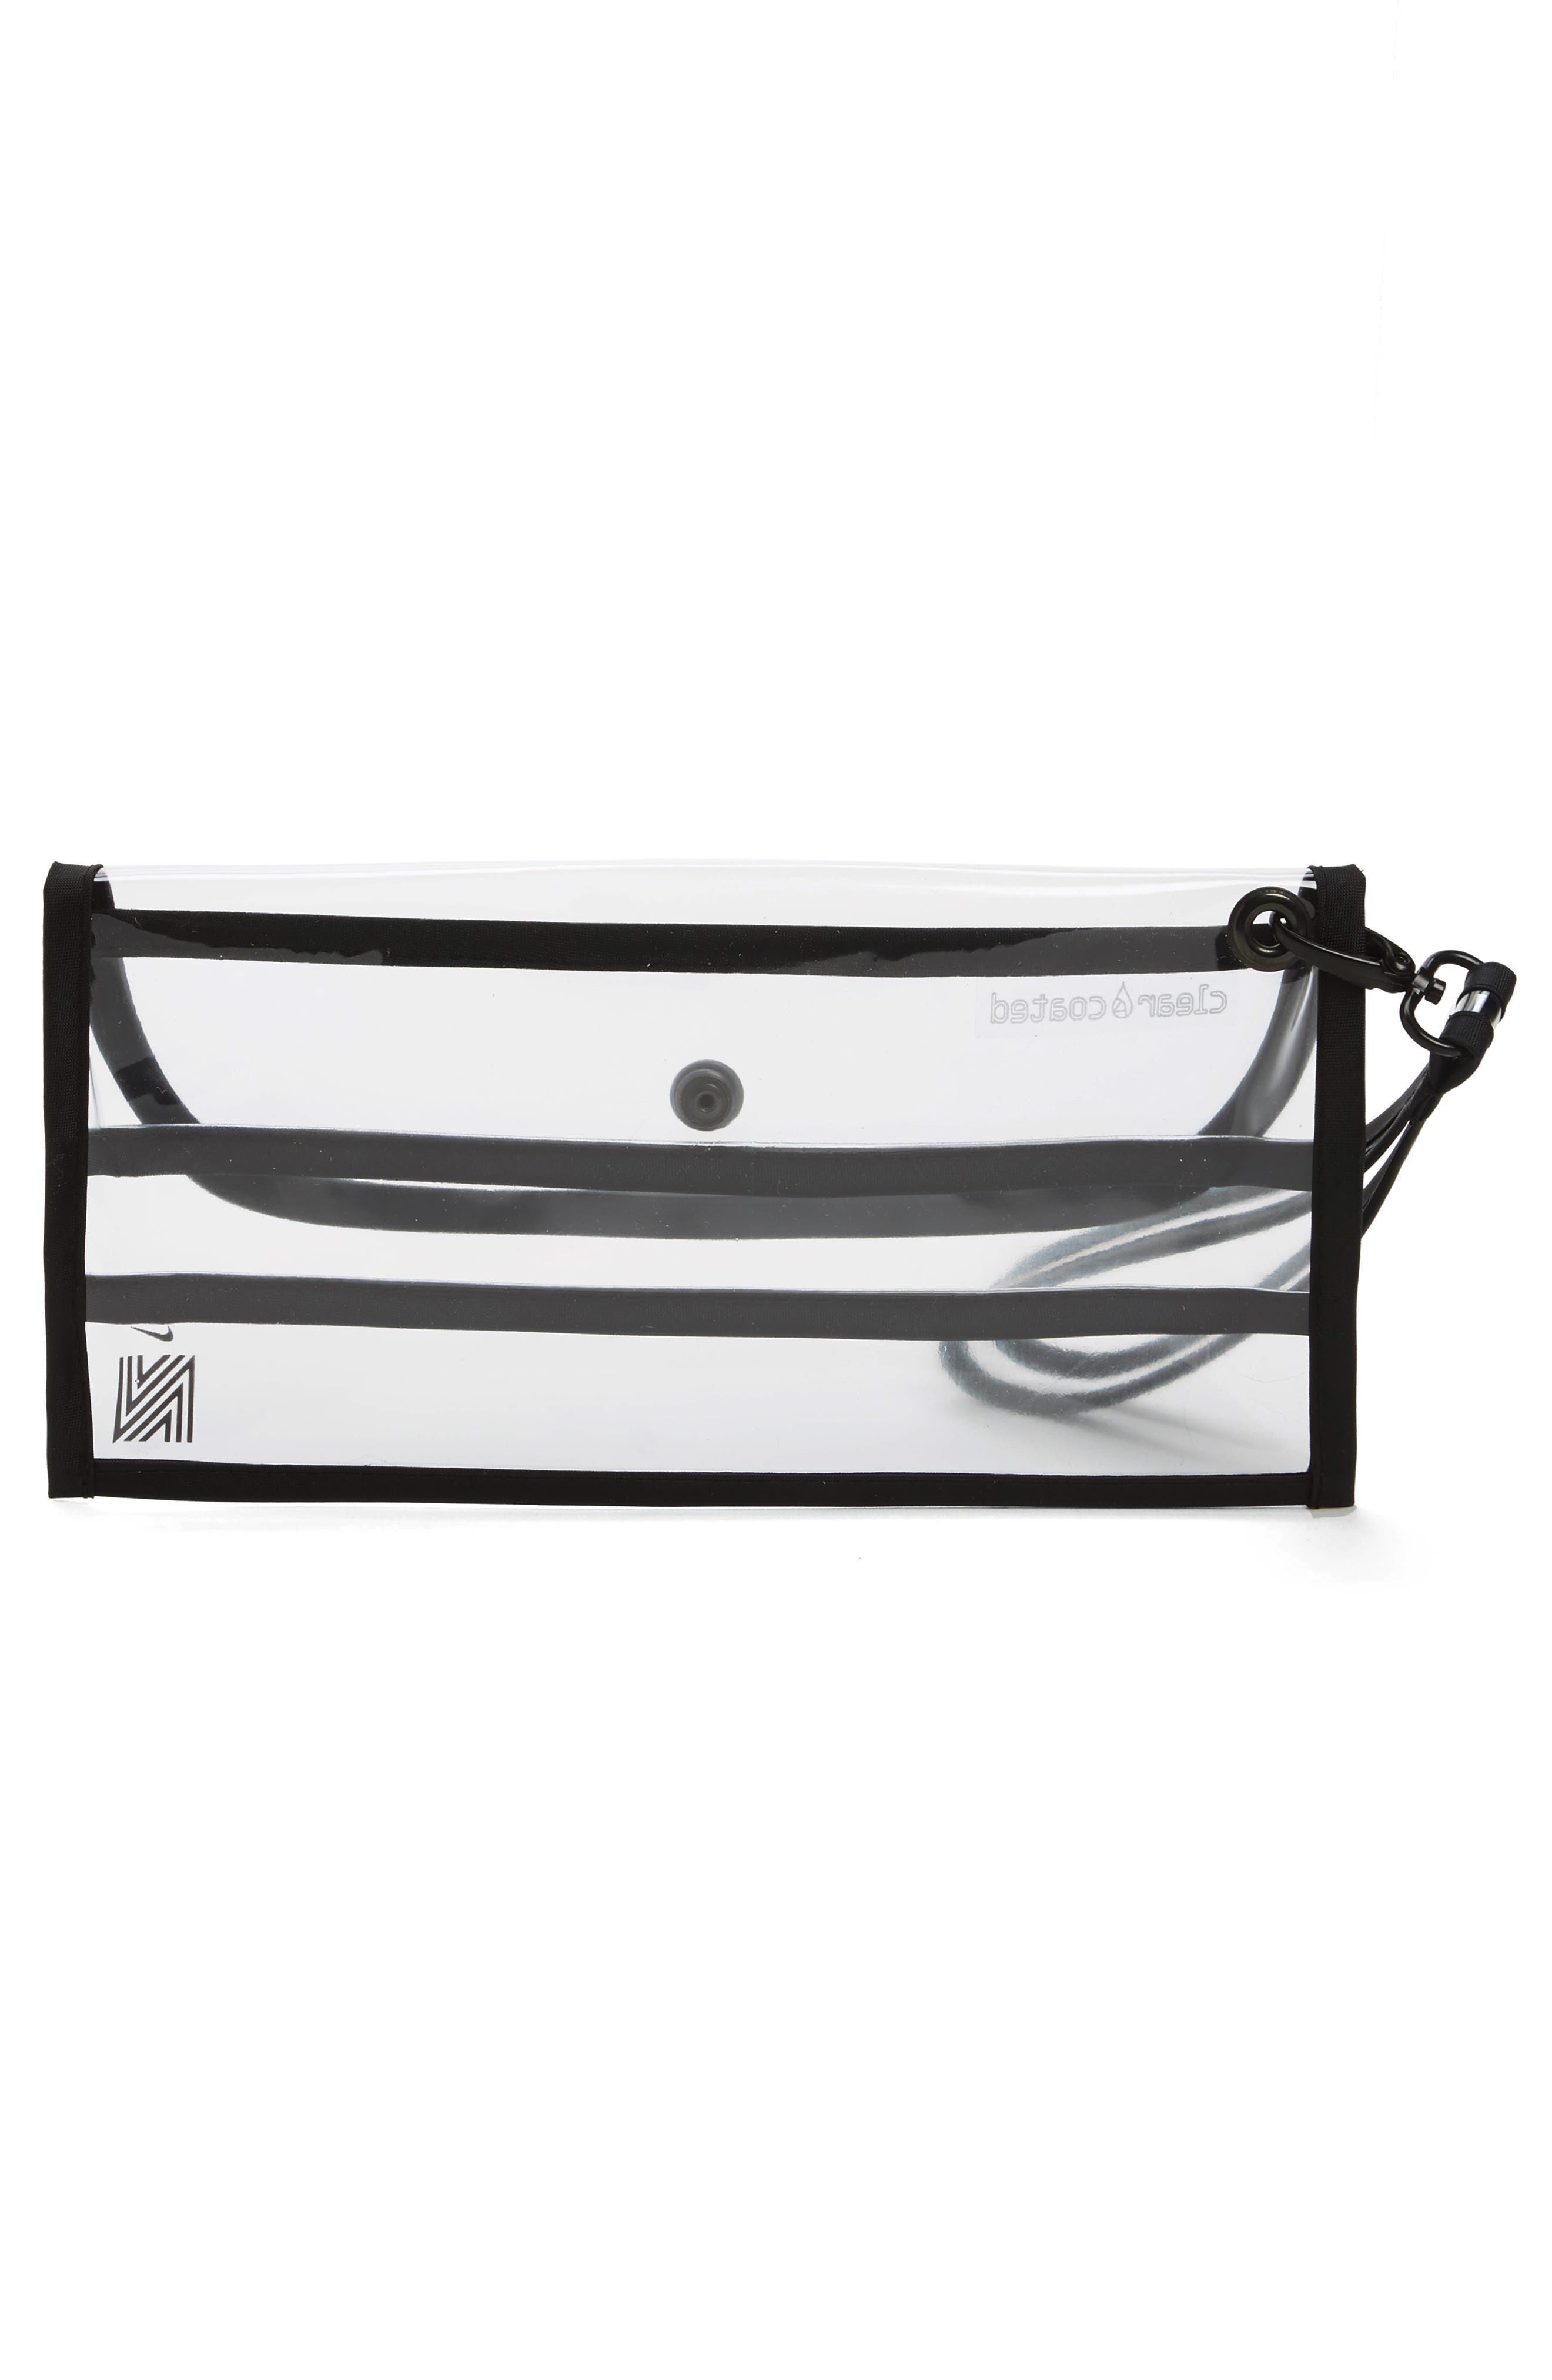 Clear Coated Nordstrom x Nike Translucent Wristlet Clutch,                             Alternate thumbnail 3, color,                             960